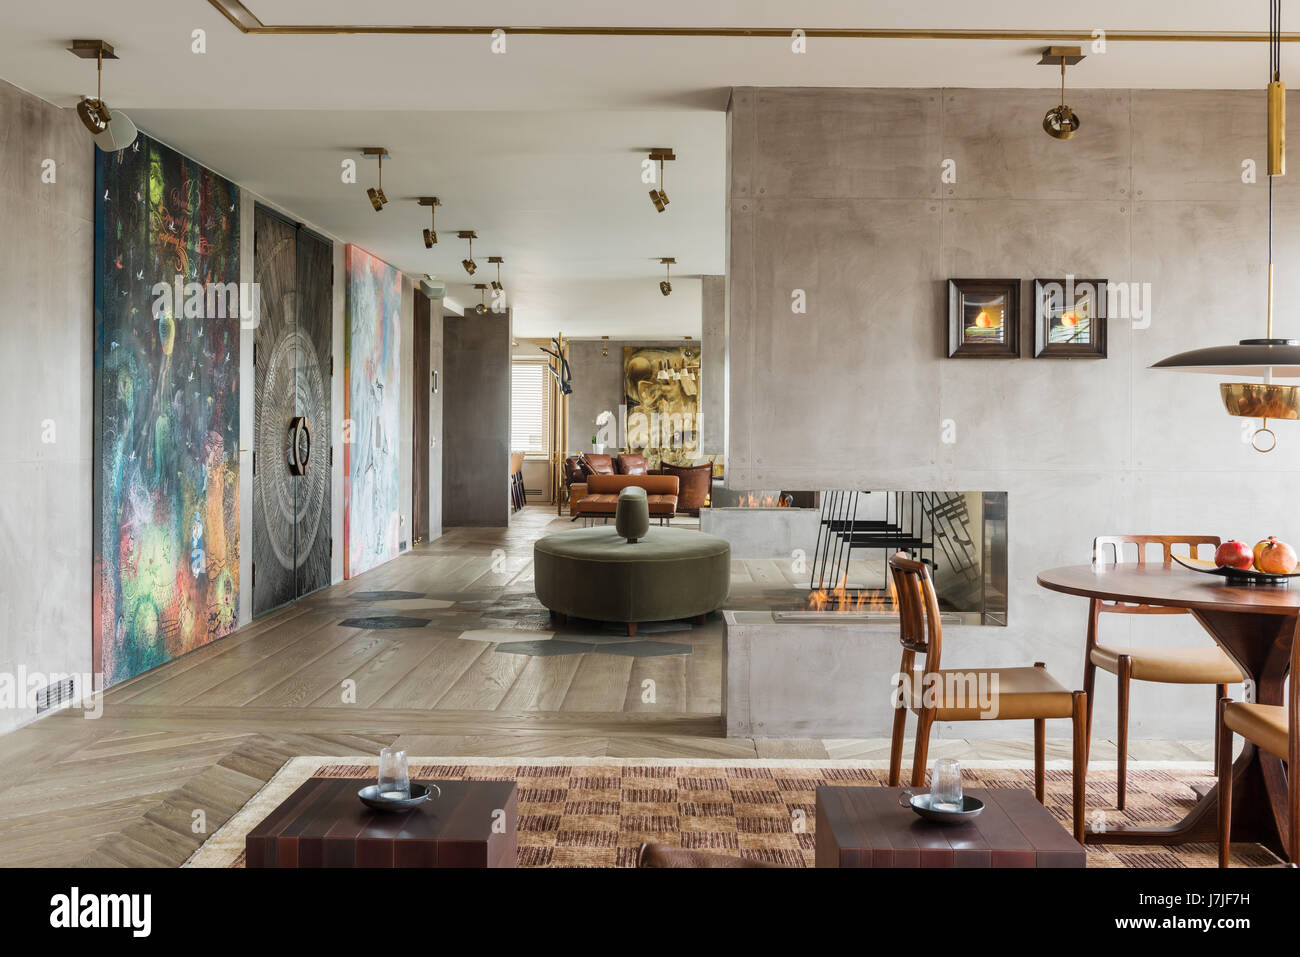 30 metre living space with structural half walls in Istanbul apartment - Stock Image